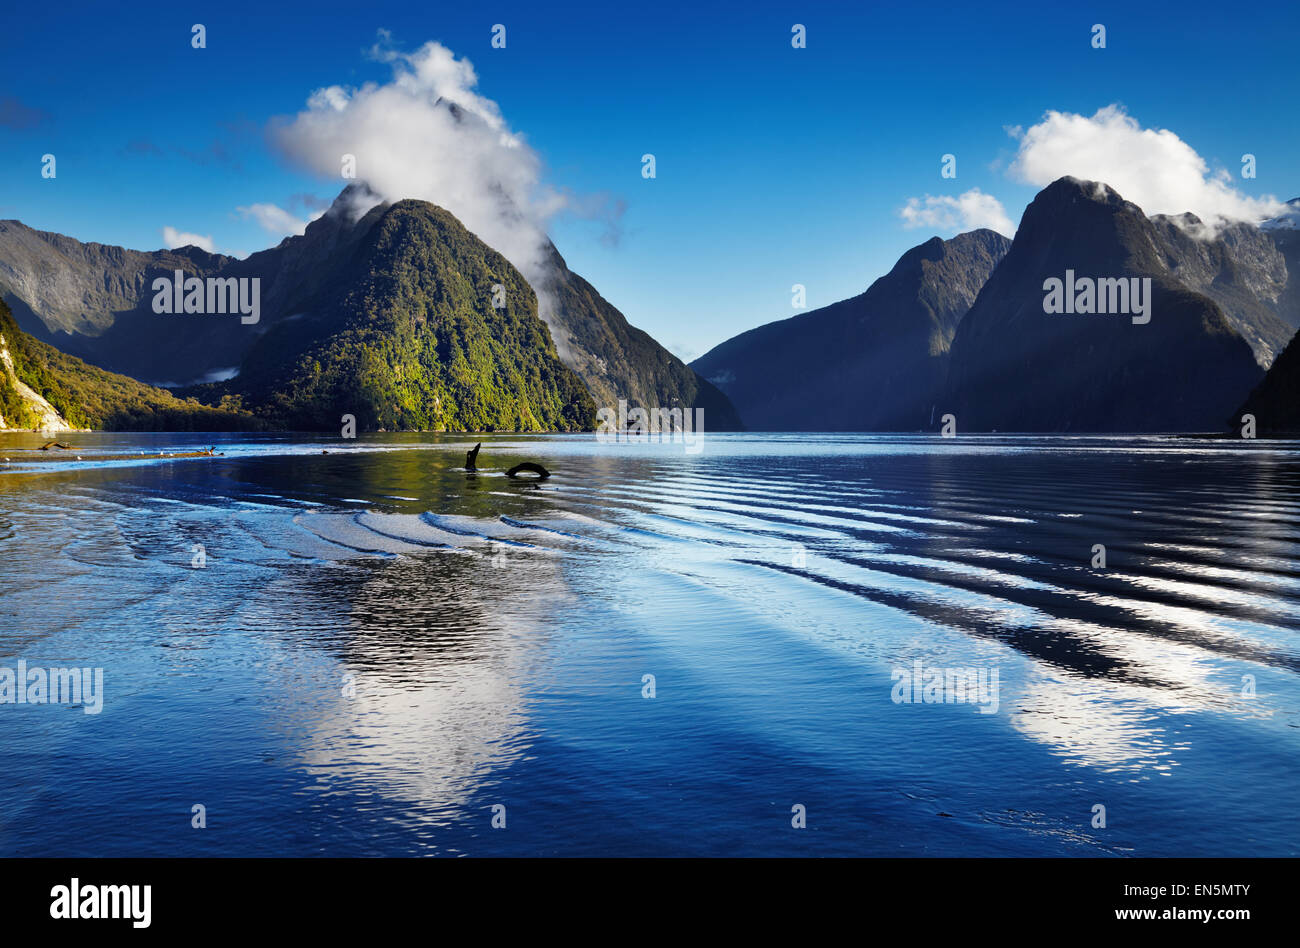 Fiord Milford Sound, South Island, New Zealand - Stock Image